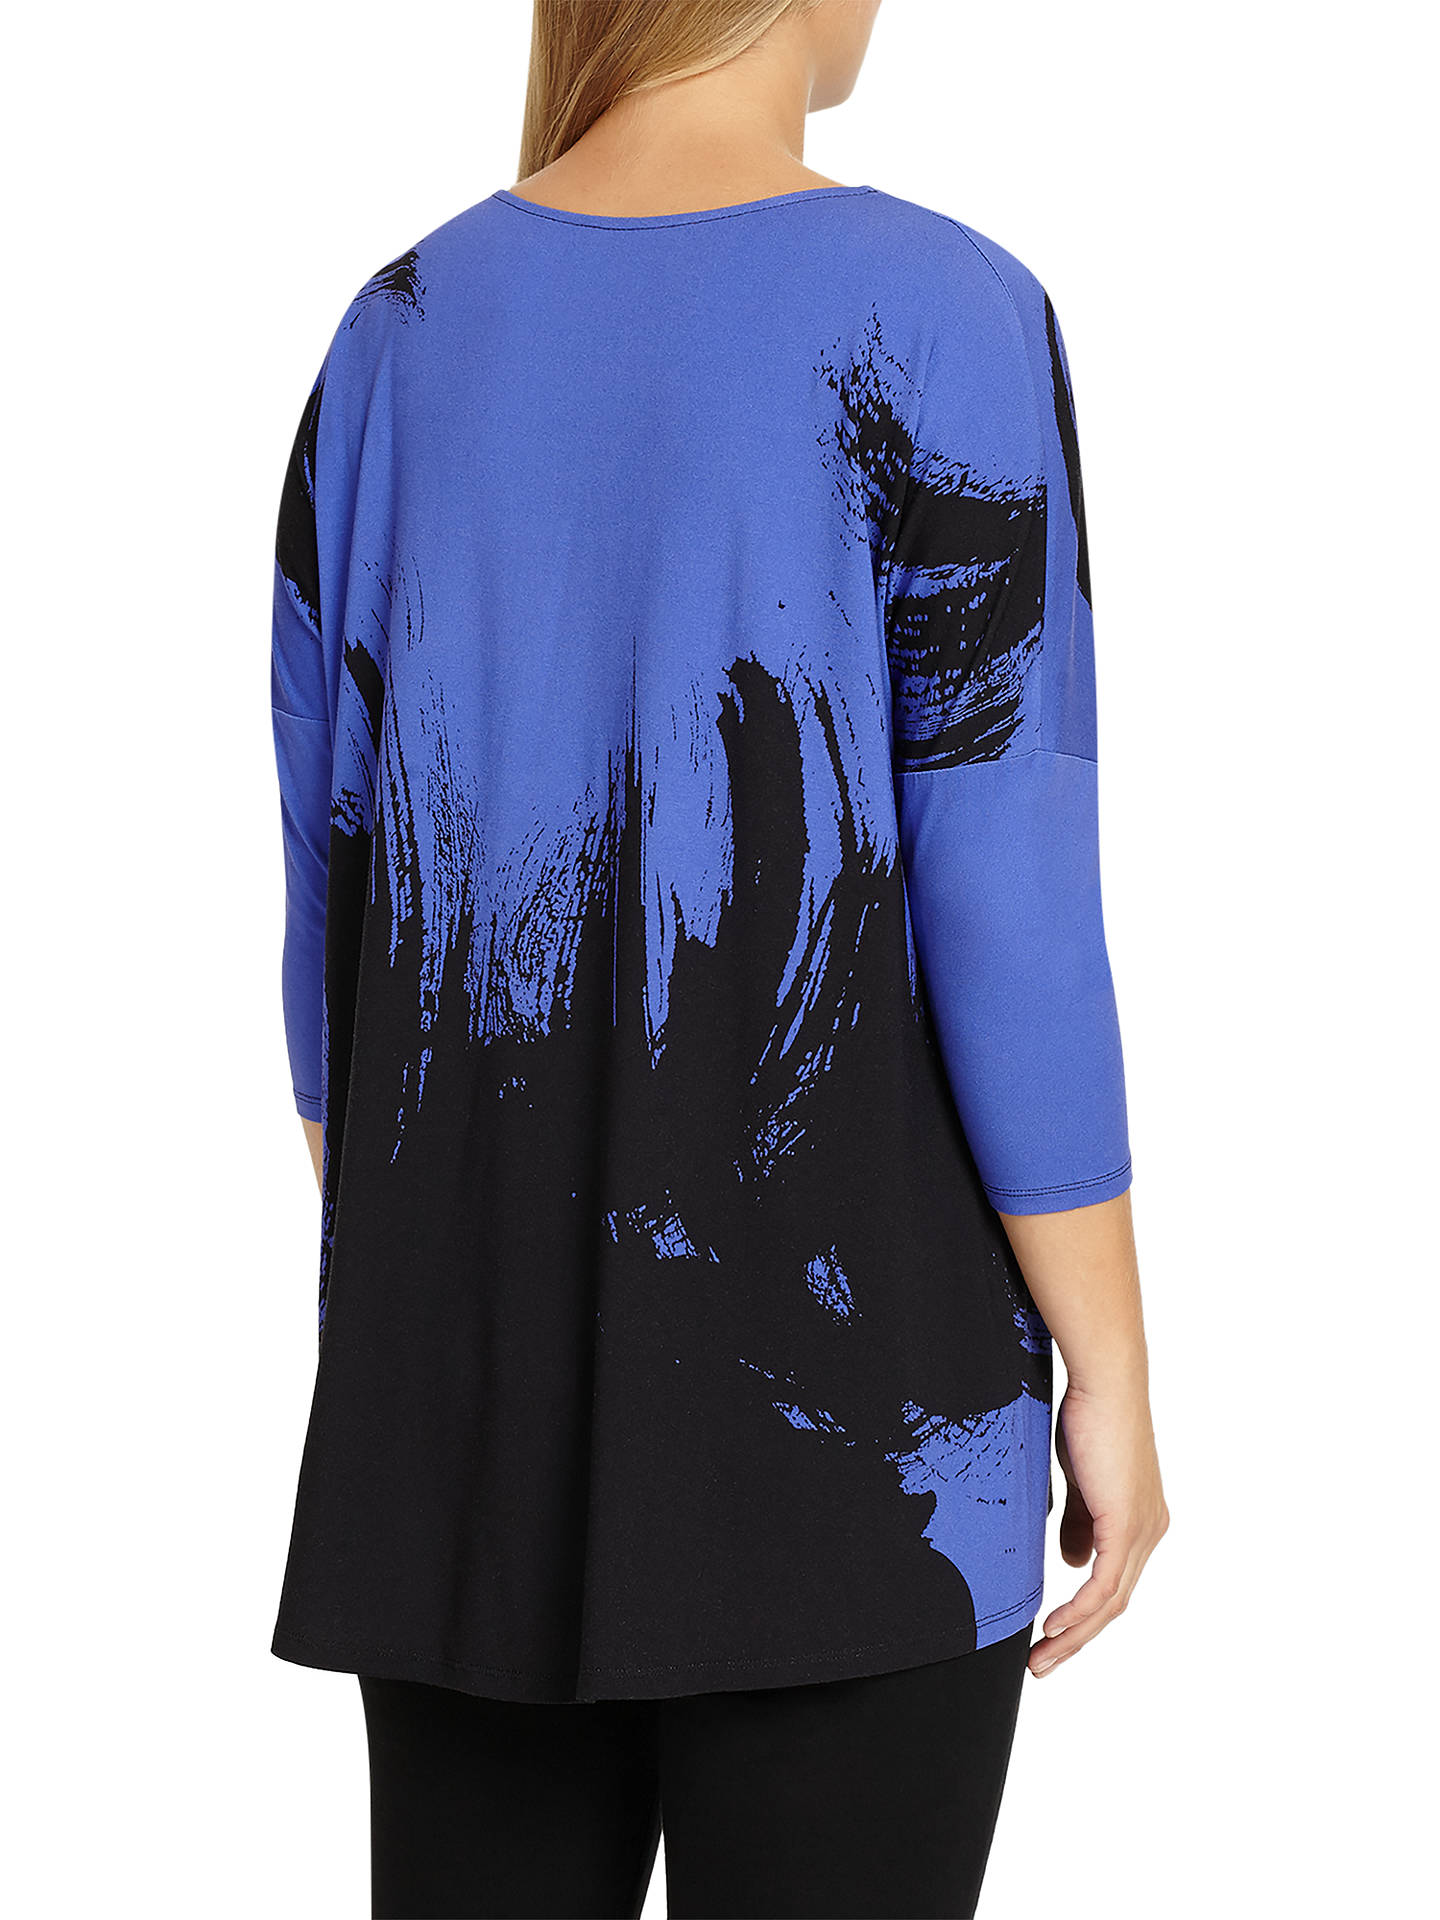 Buy Studio 8 Romy Abstract Top, Blue/Black, 12 Online at johnlewis.com